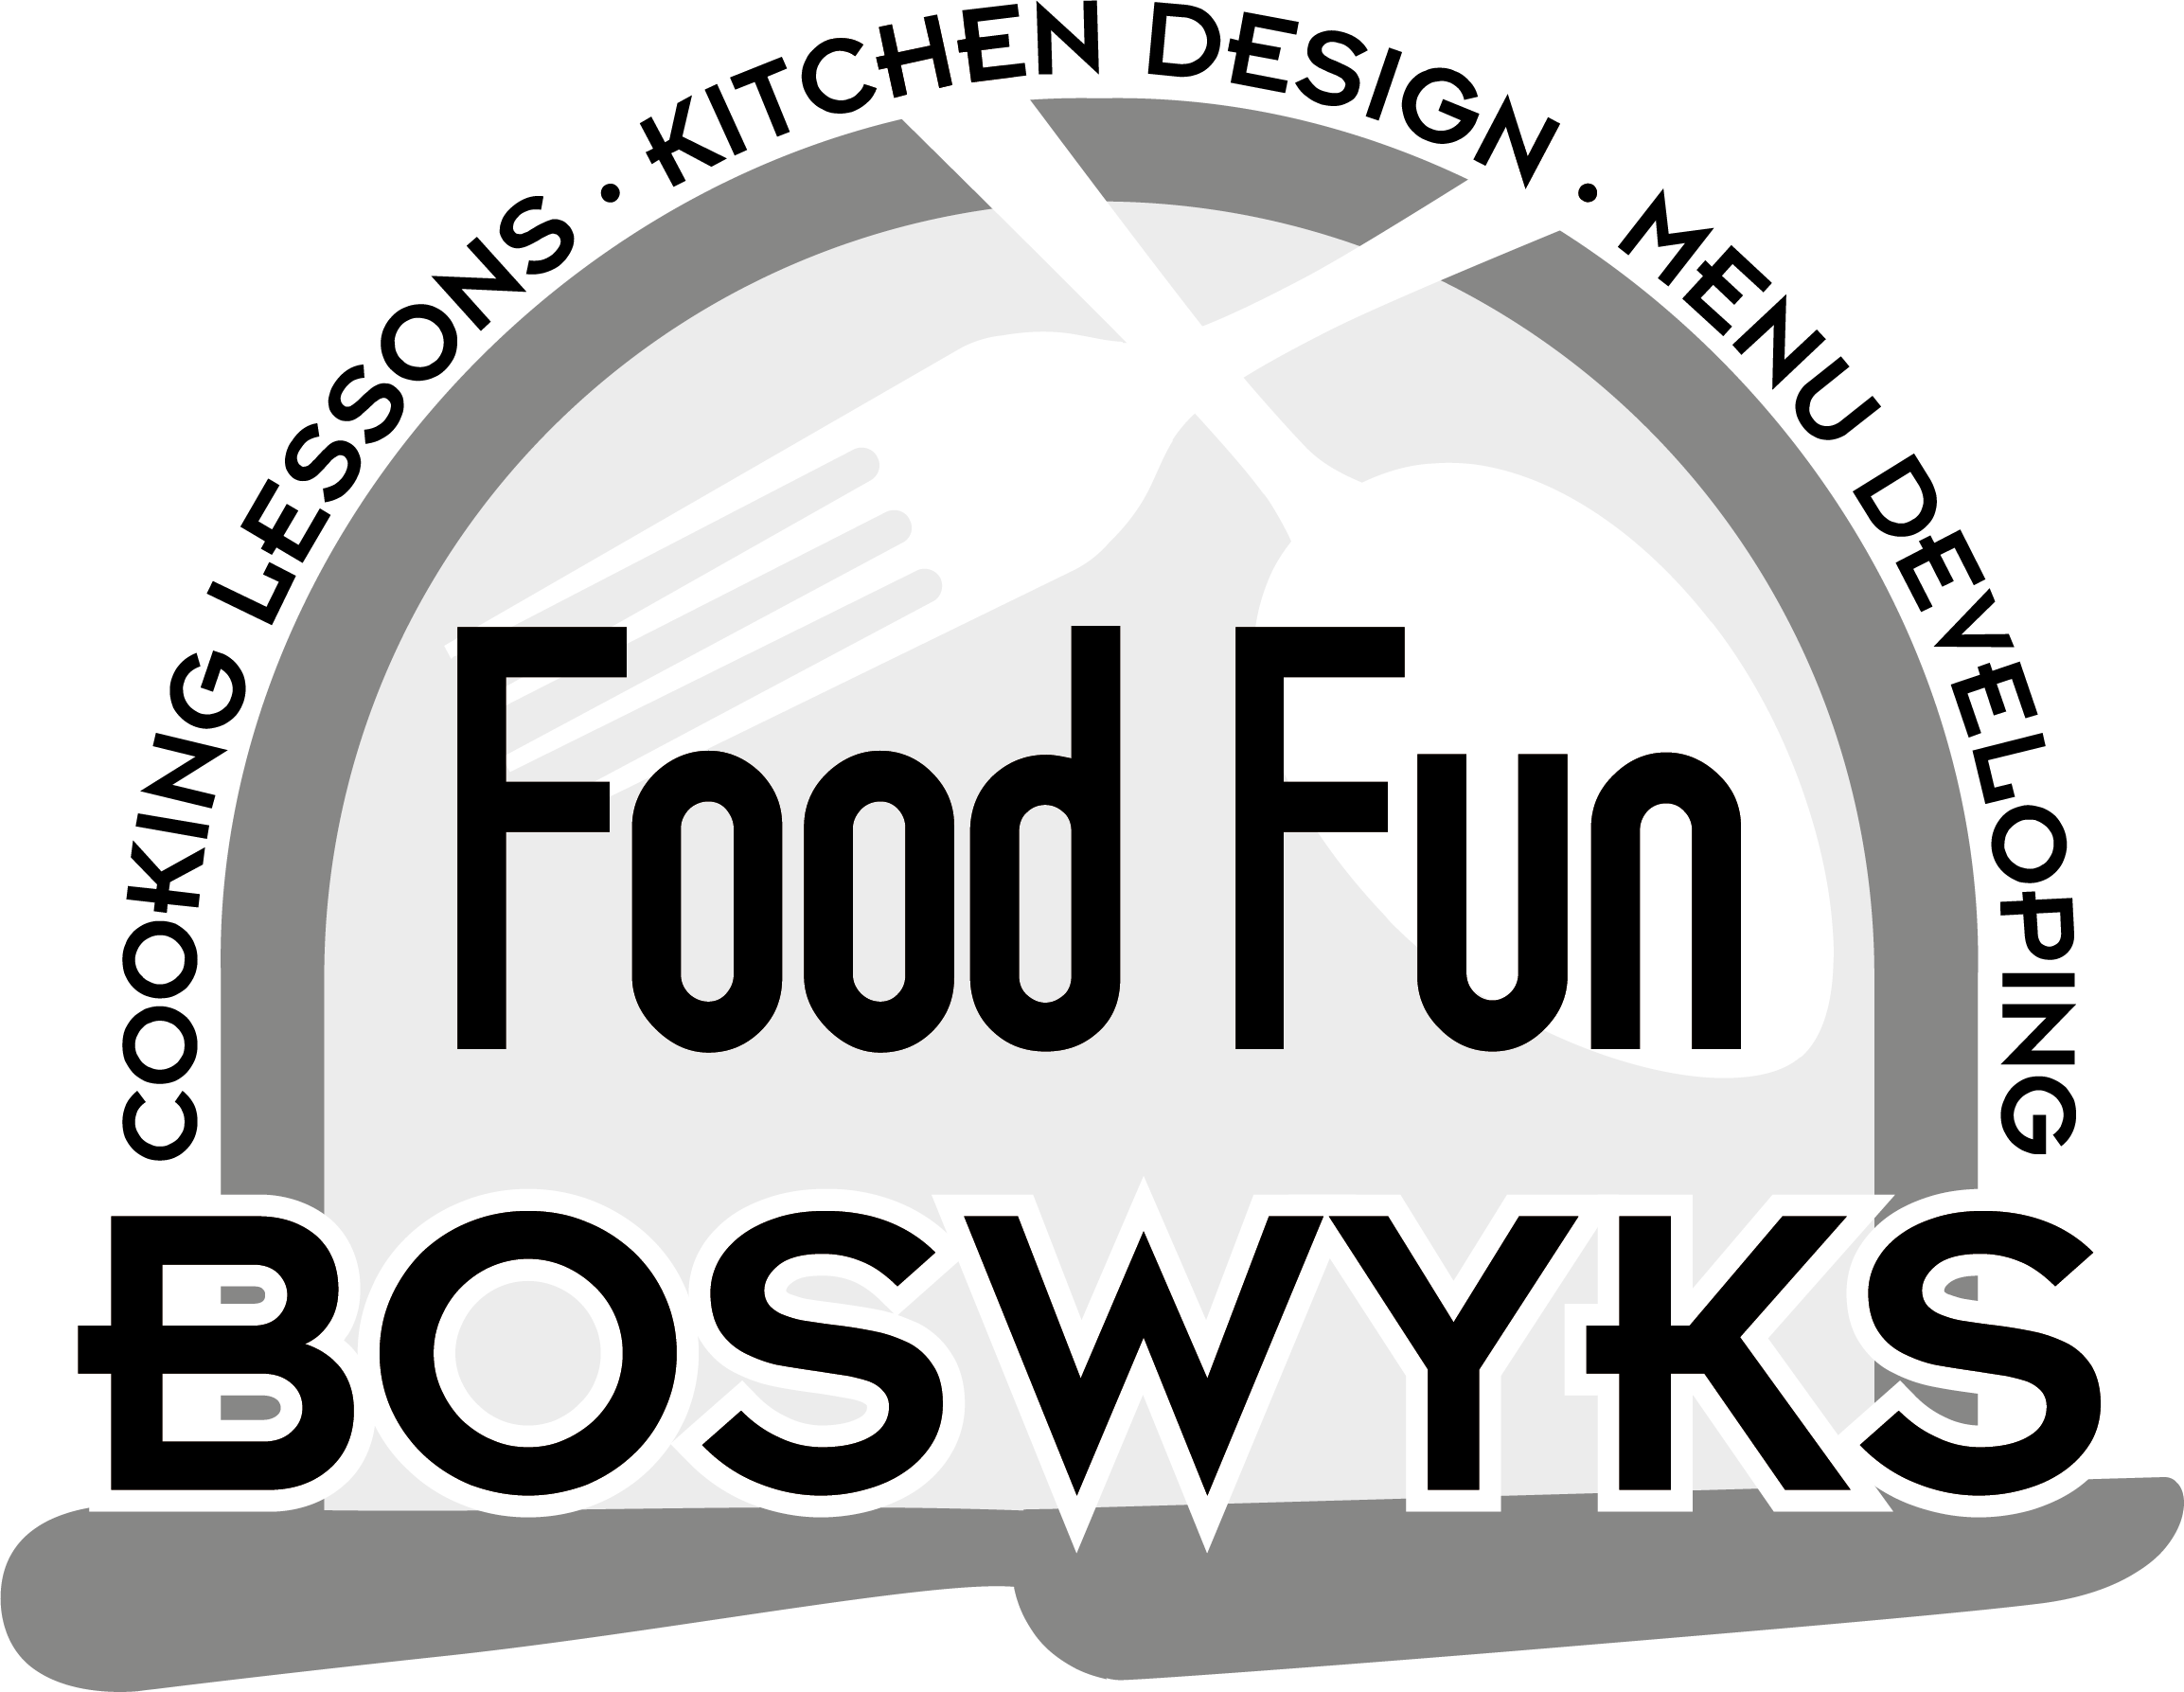 Boswyks Food Fun